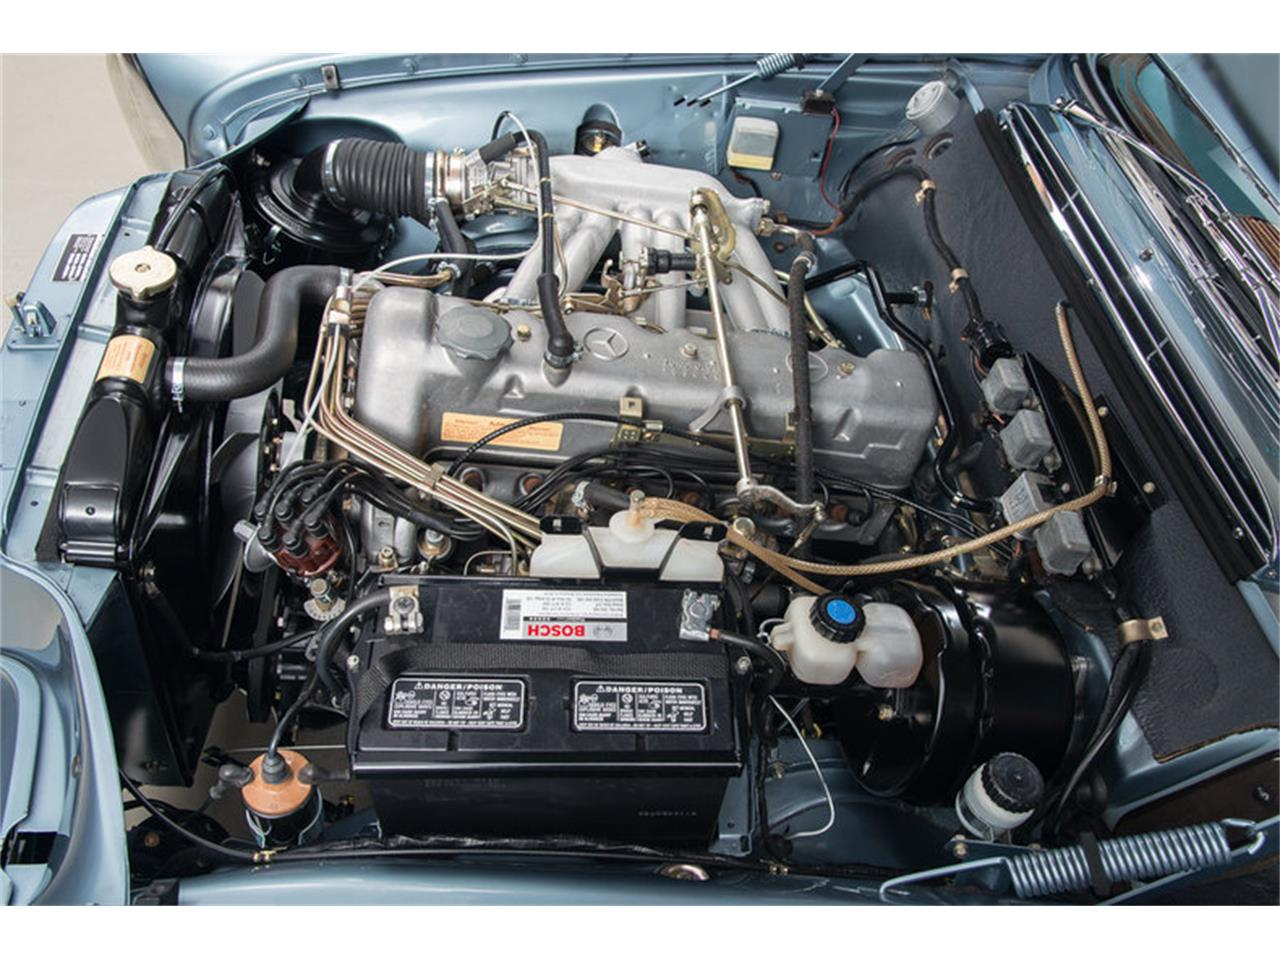 Large Picture of 1966 Mercedes-Benz 250SE located in Scotts Valley California Auction Vehicle - DSVZ